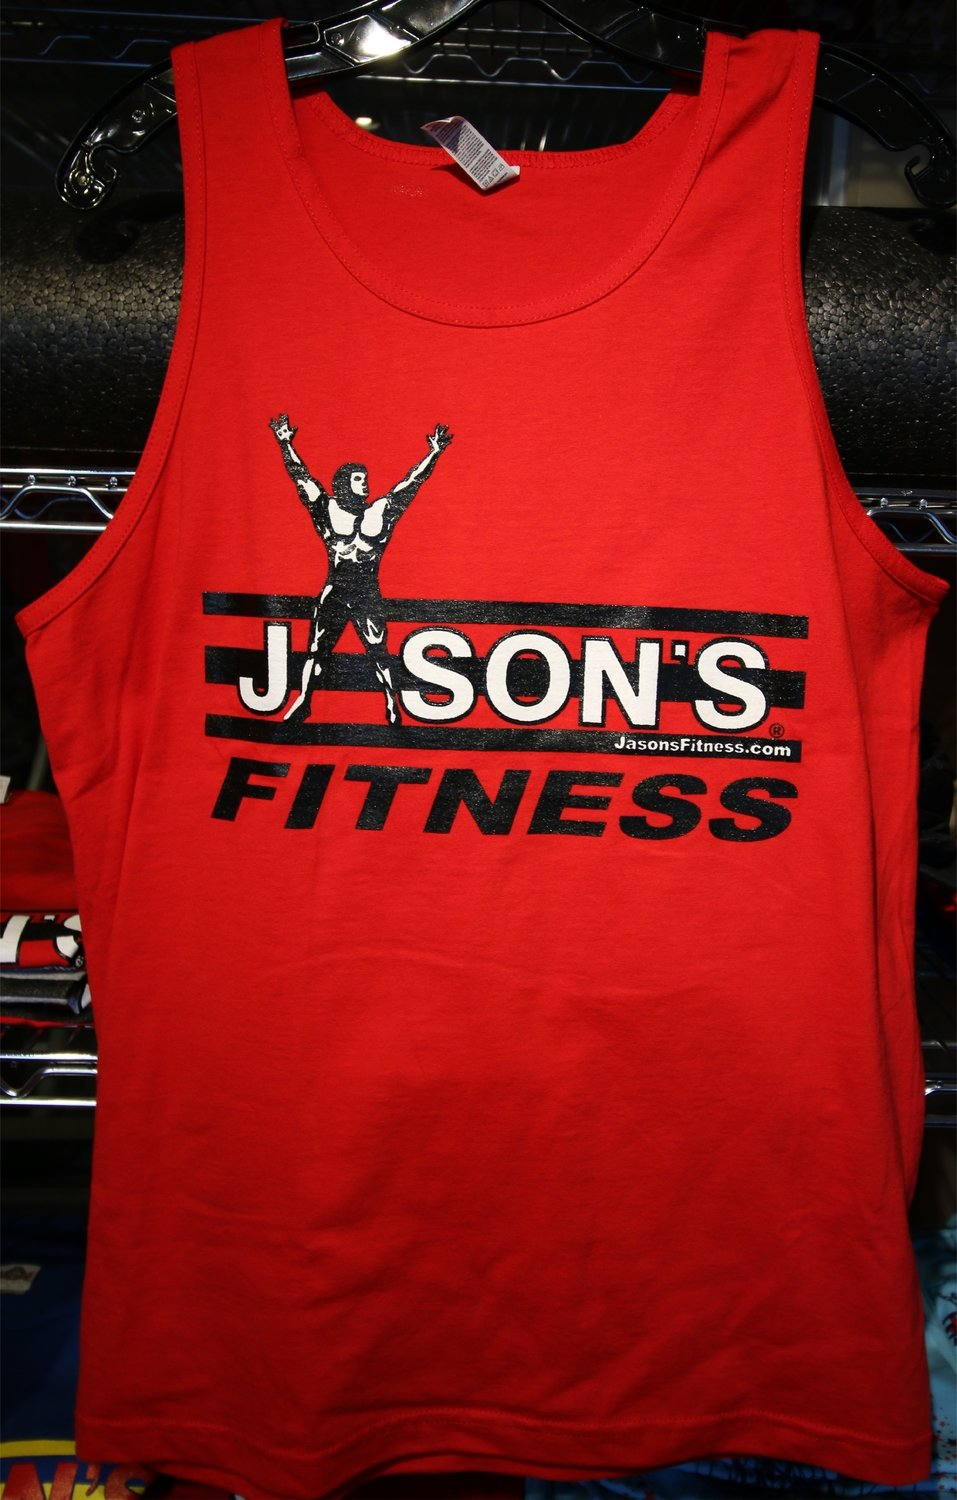 Jason's Fitness Tank Top Red